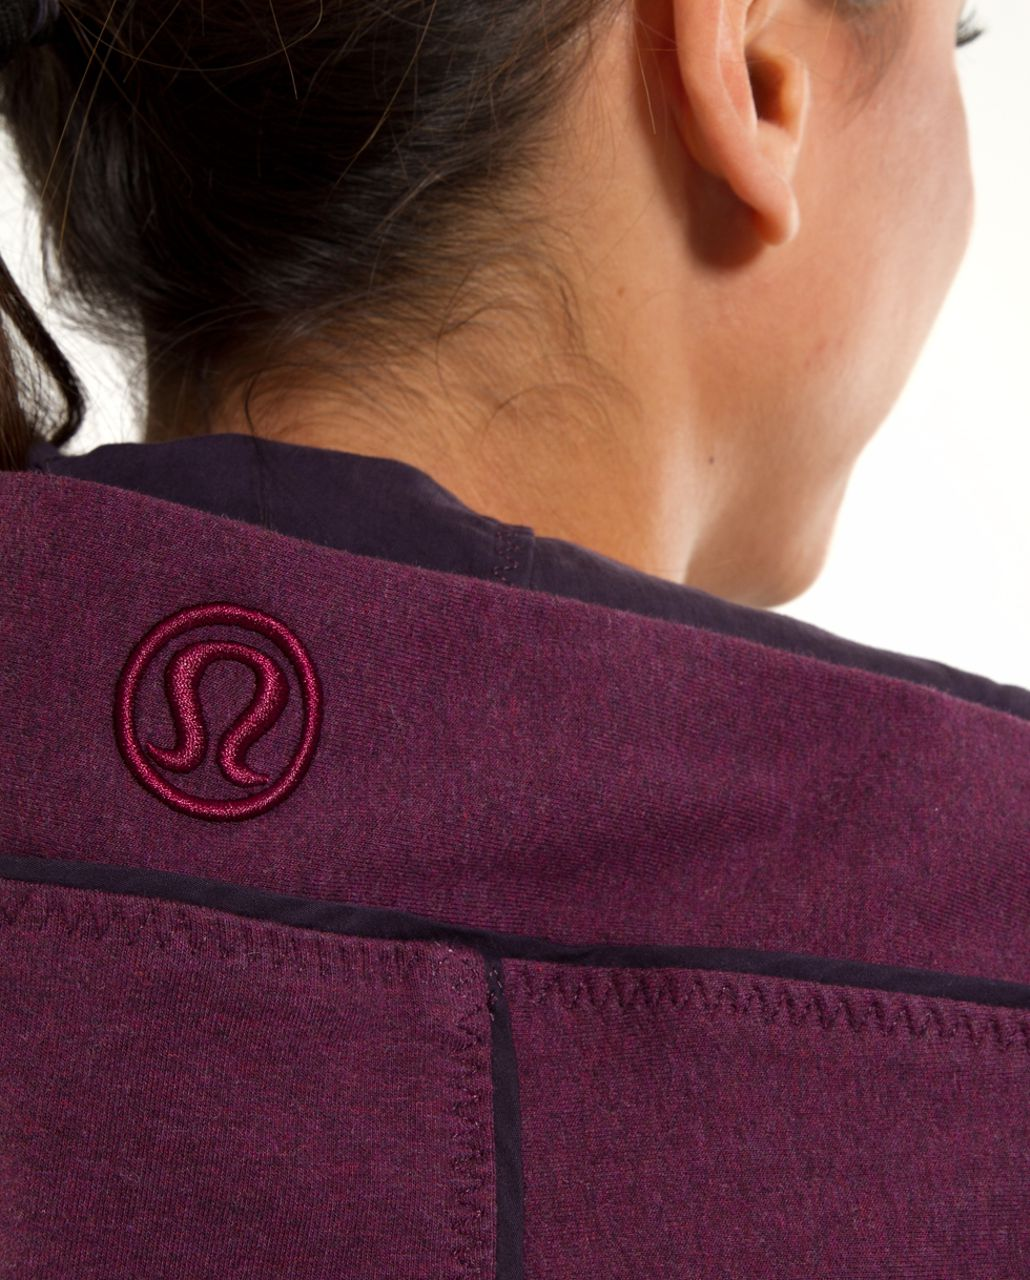 Lululemon Live Simply Jacket - Heathered Plum